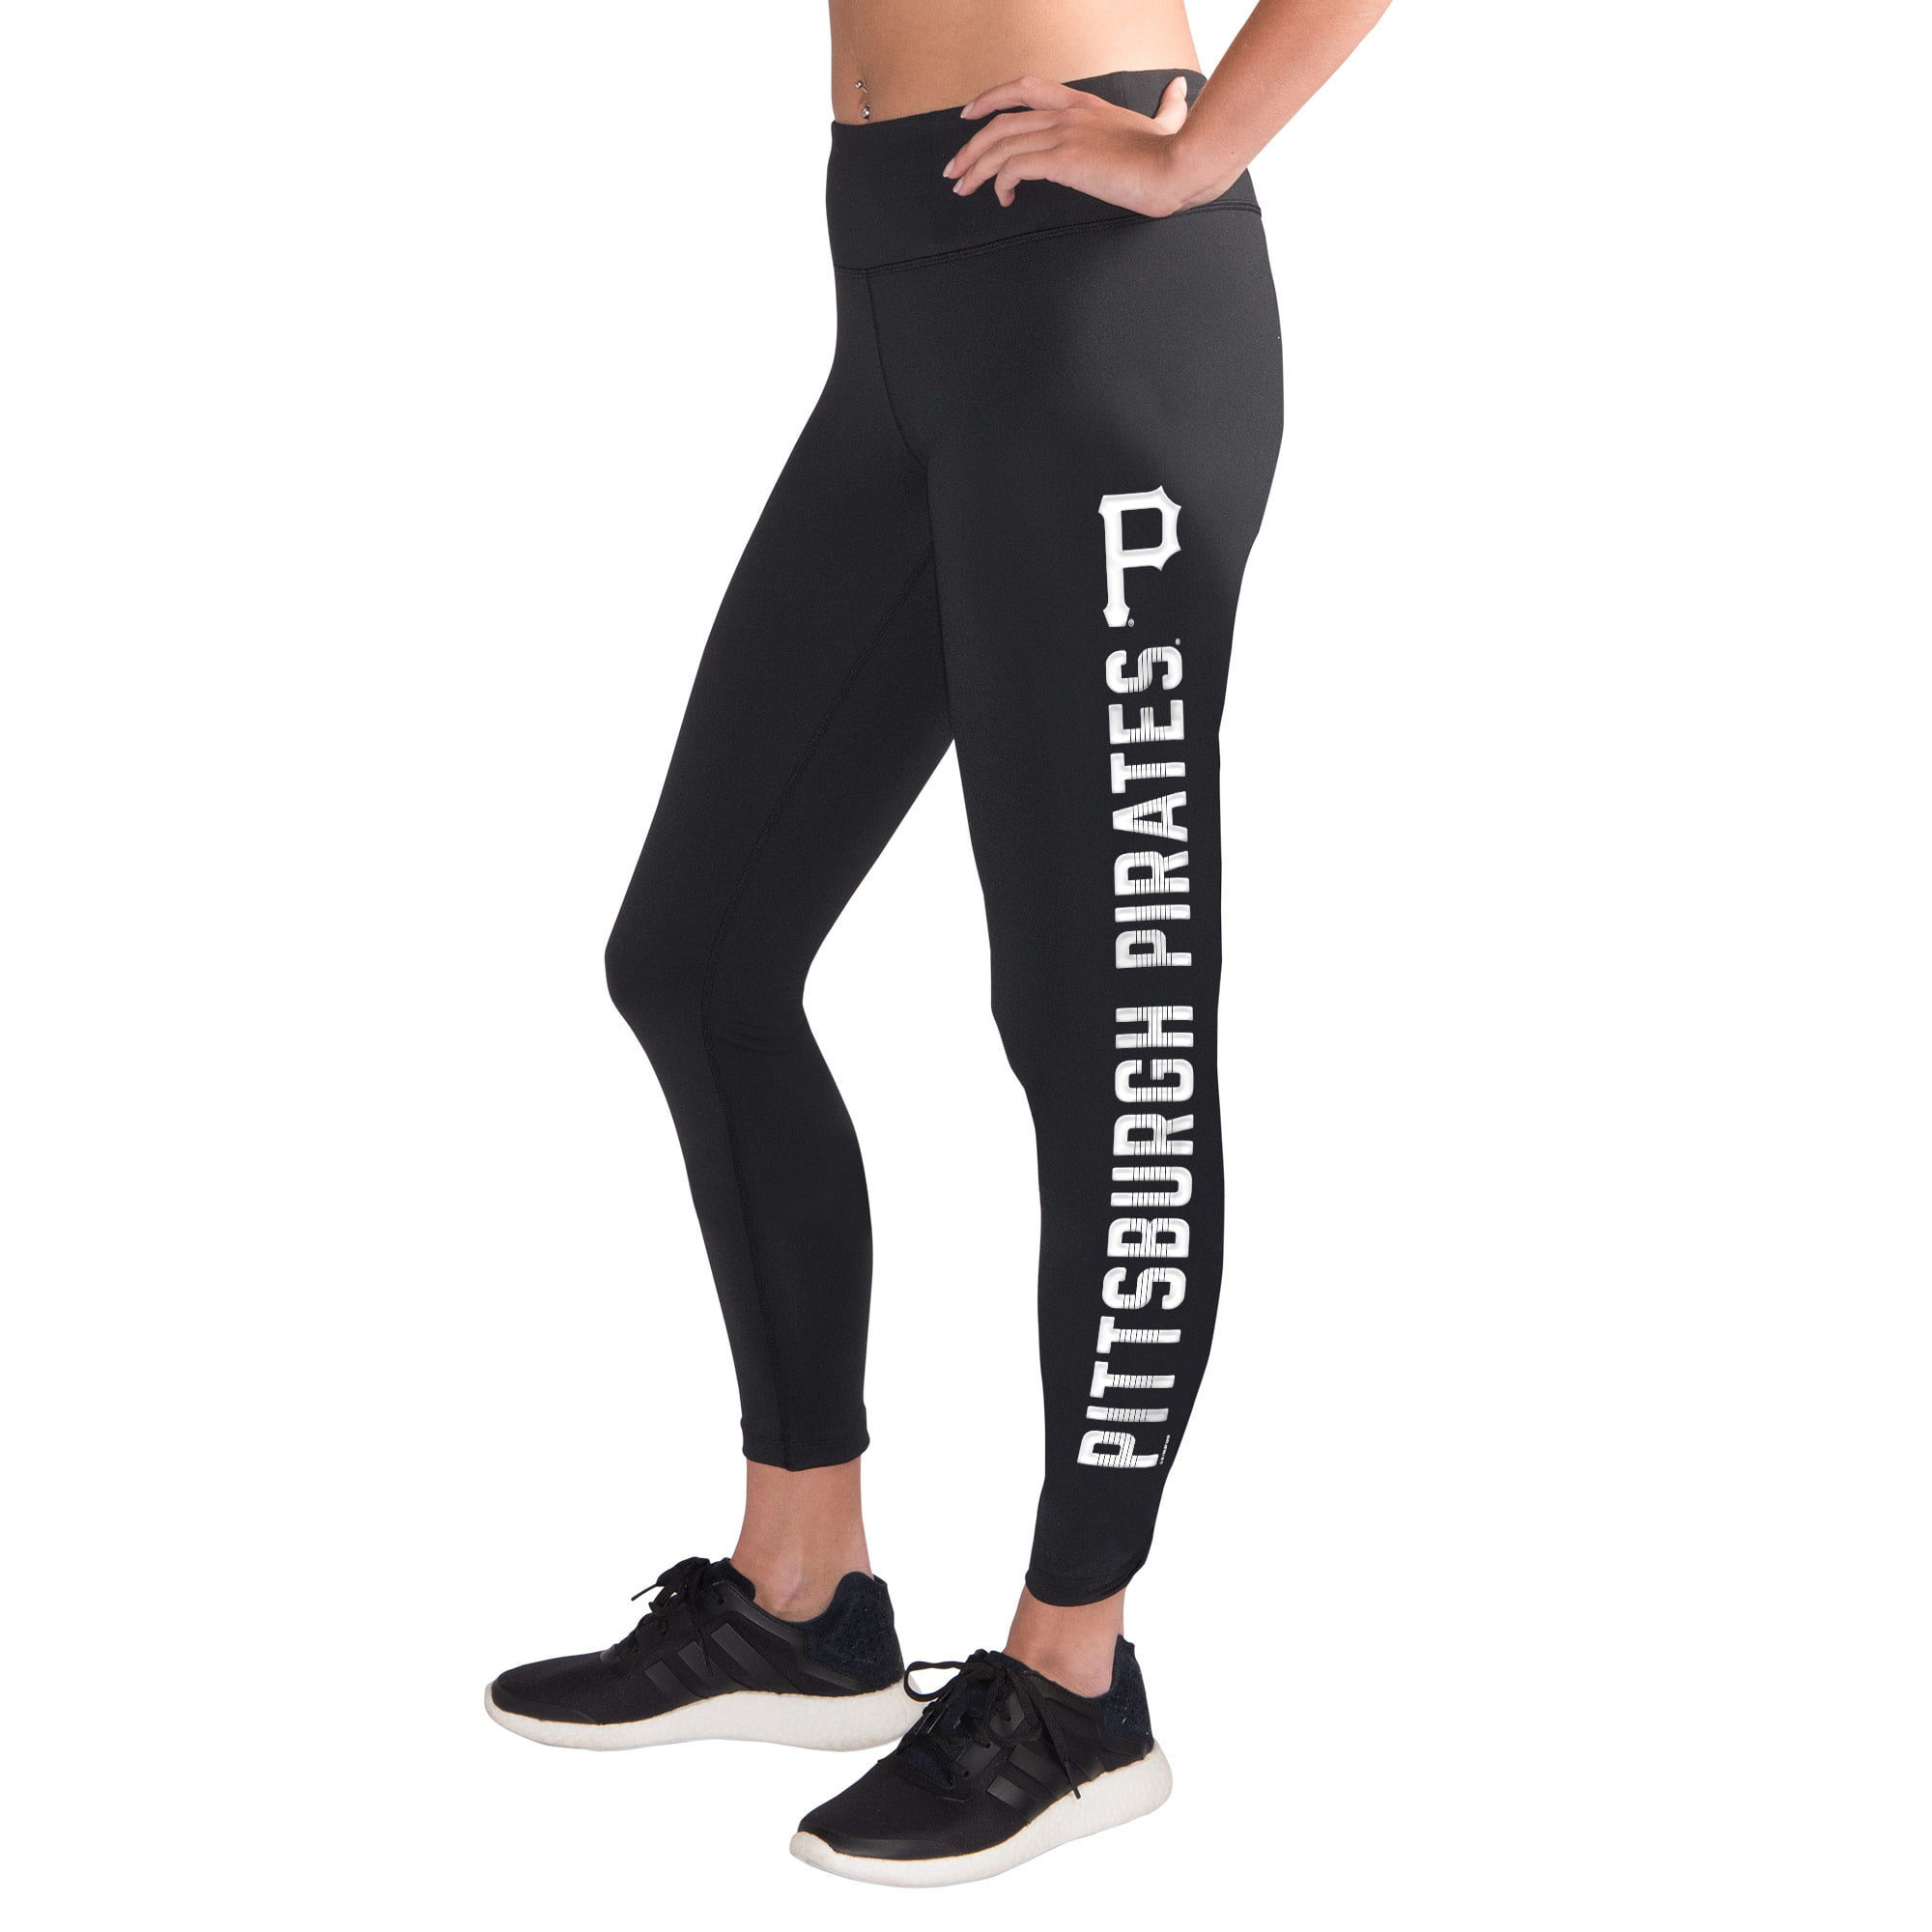 Pittsburgh Pirates G-III 4Her by Carl Banks Women's Base Runner Leggings Black by G-III LEATHER FASHIONS INC